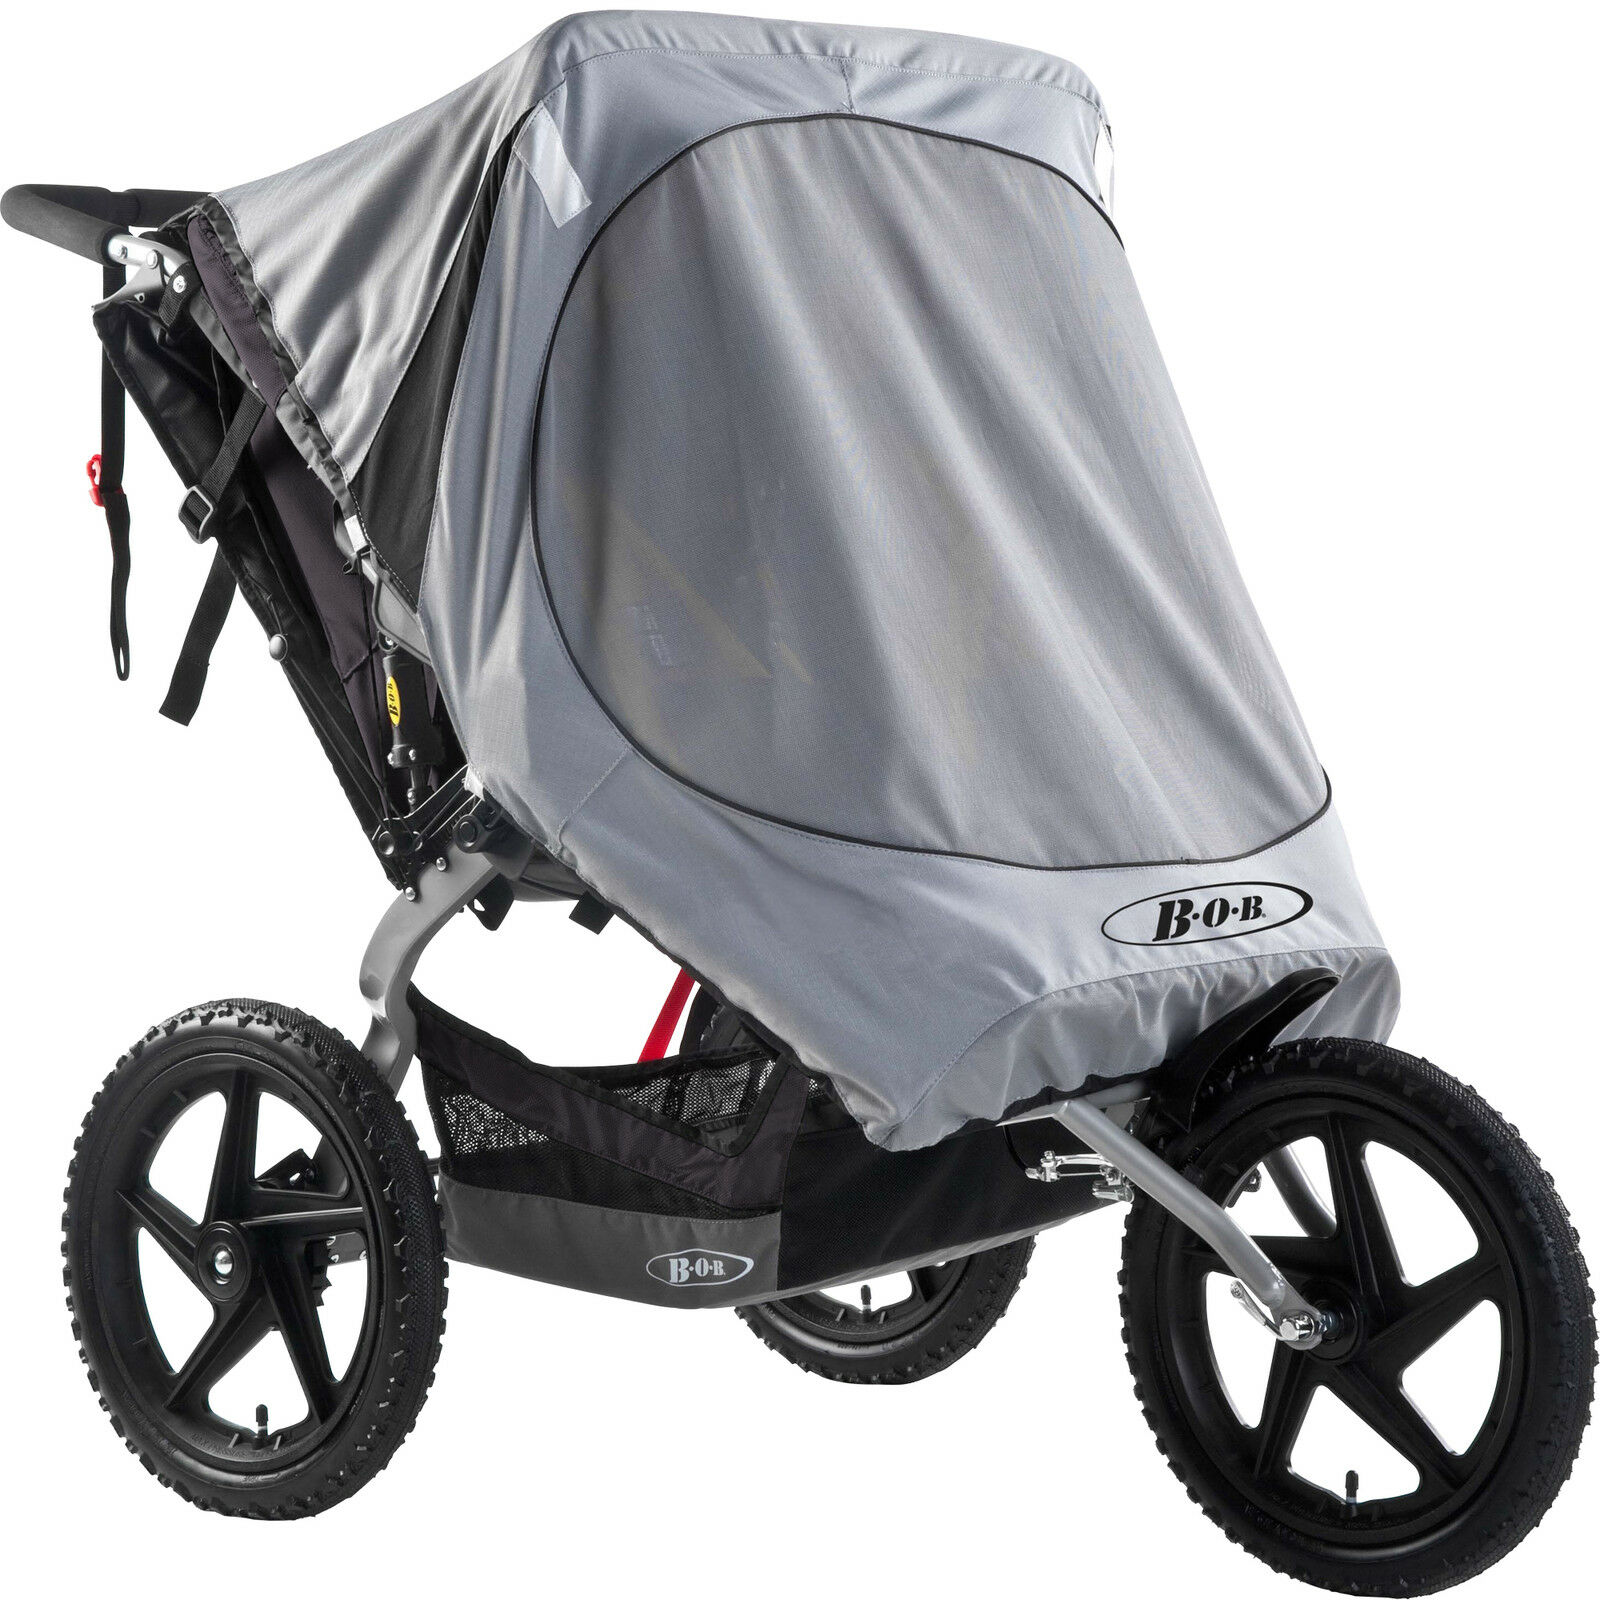 Peg Perego Stroller For Twins Britax Bob Utility Ironman Double Buggy Stroller Cover Wind Shield Sun Visor New